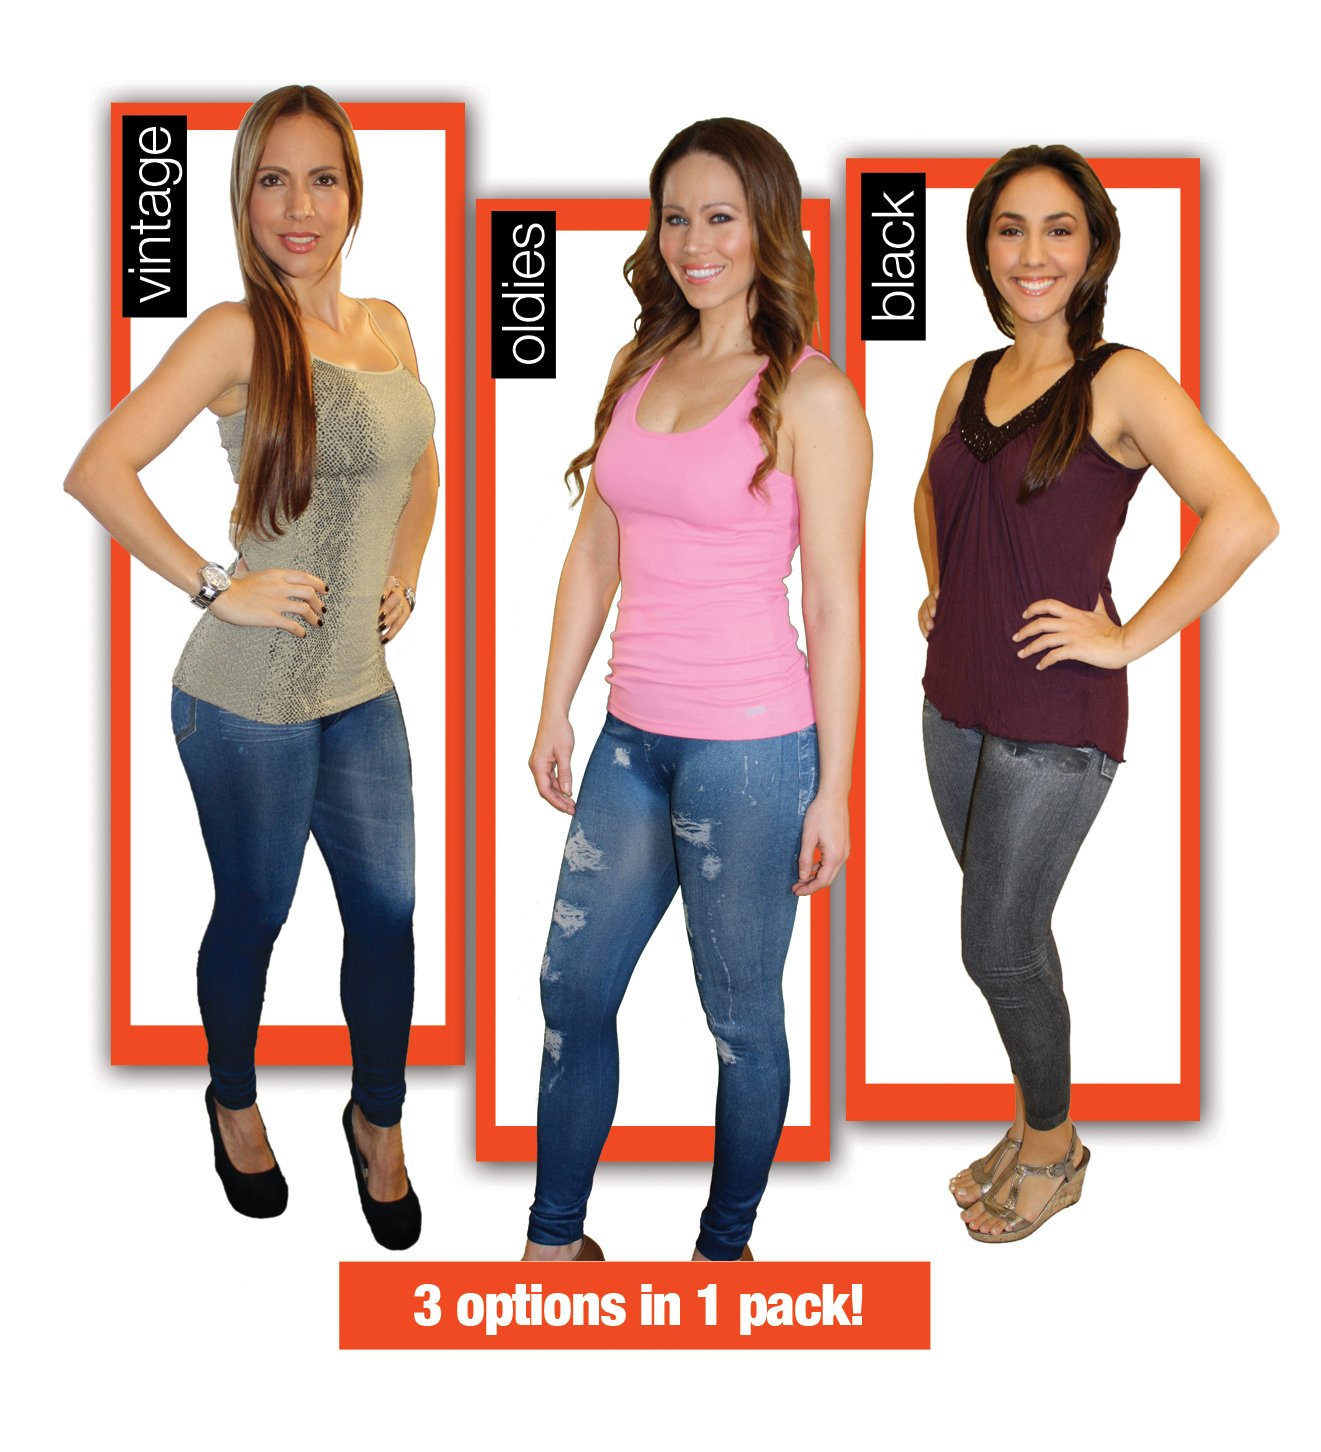 LeJeans As Seen On TV - The Comfort of Leggings with The Style of Jeans (S/M)